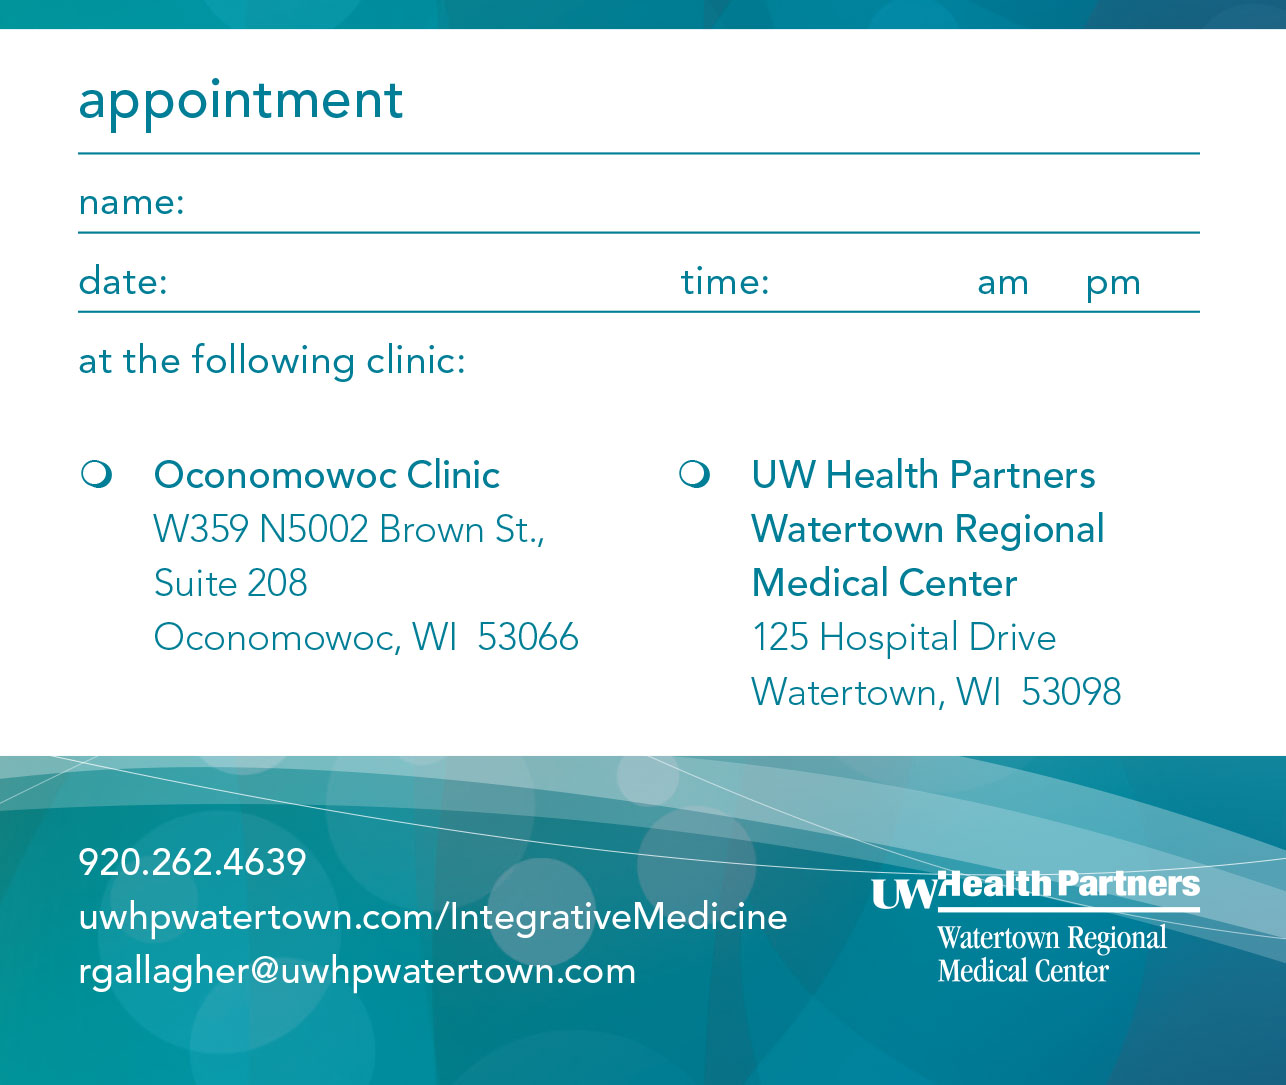 Integrative Medicine appointment card